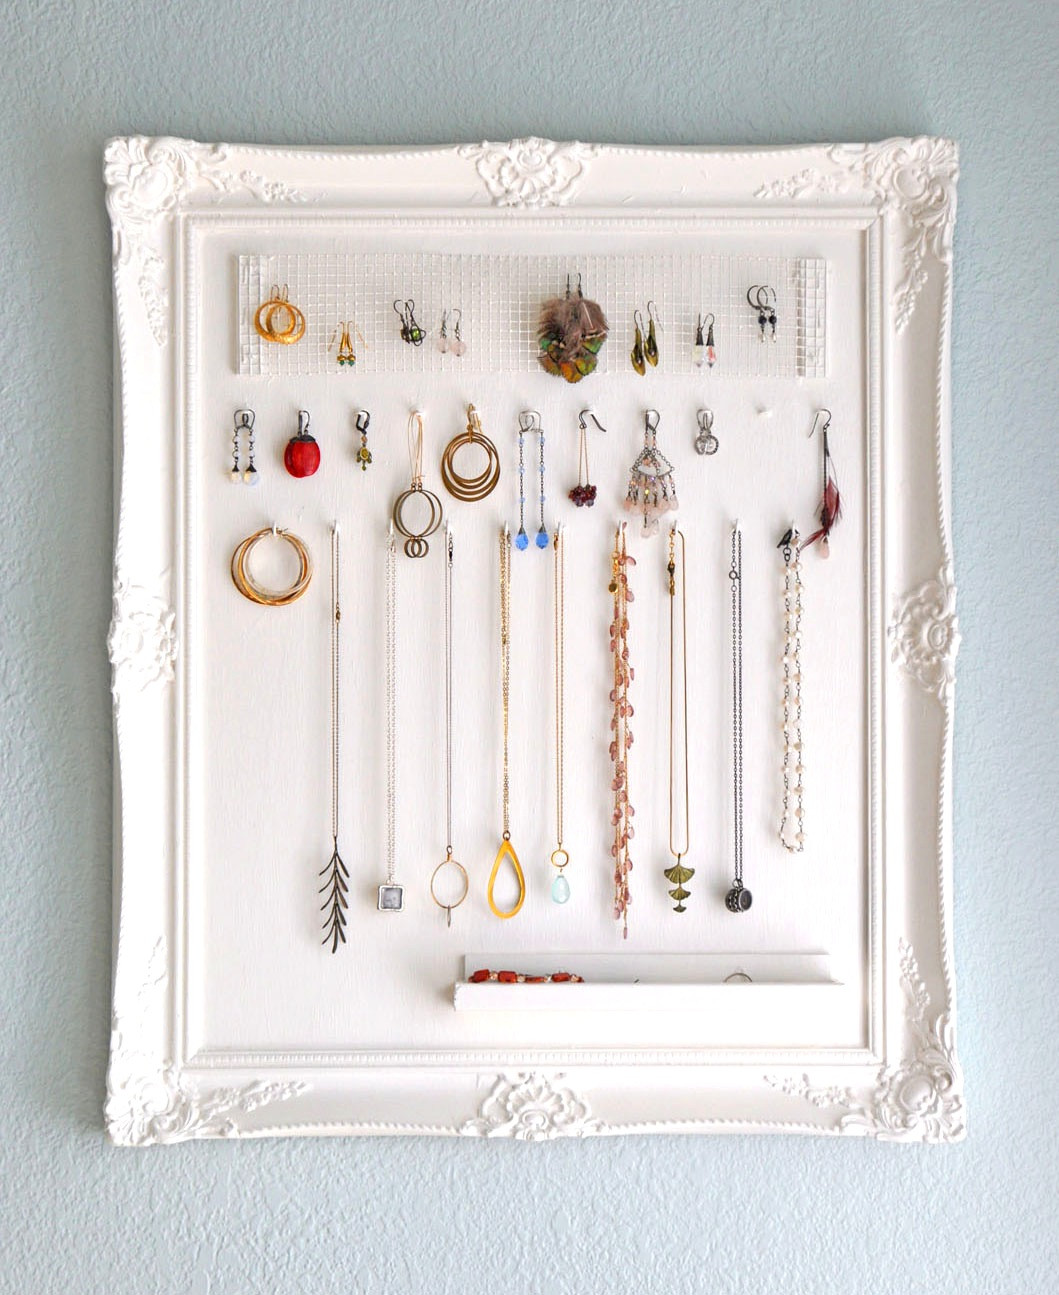 Best ideas about DIY Picture Stand . Save or Pin 23 Jewelry Display DIYs Now.